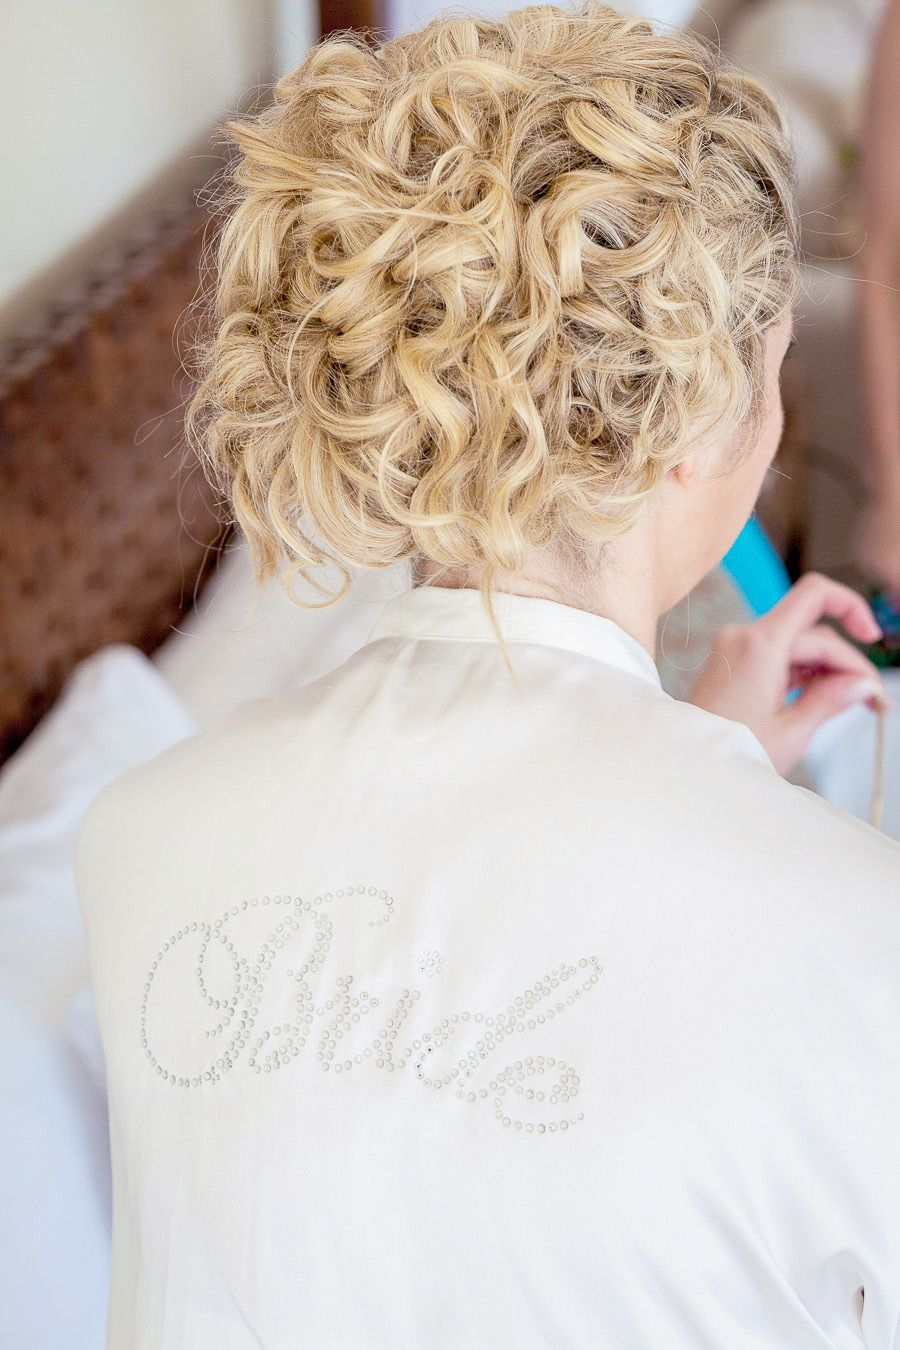 Riviera Maya Wedding at Azul Sensatori | Riviera maya, Destination ...